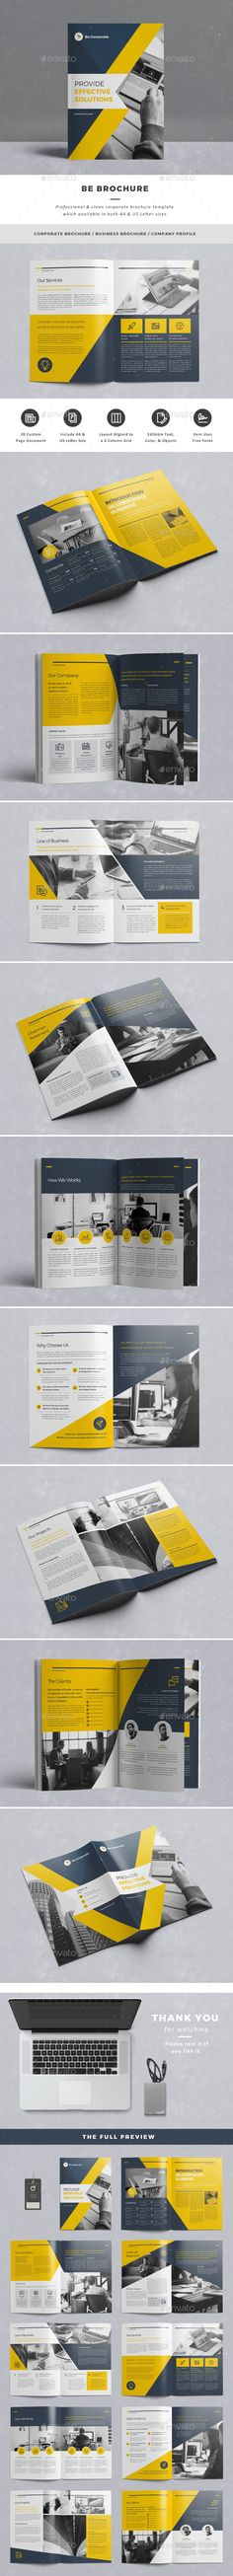 Be Brochure Template InDesign INDD. Download here: http://graphicriver.net/item/be-brochure/15667624?ref=ksioks                                                                                                                                                                                 More